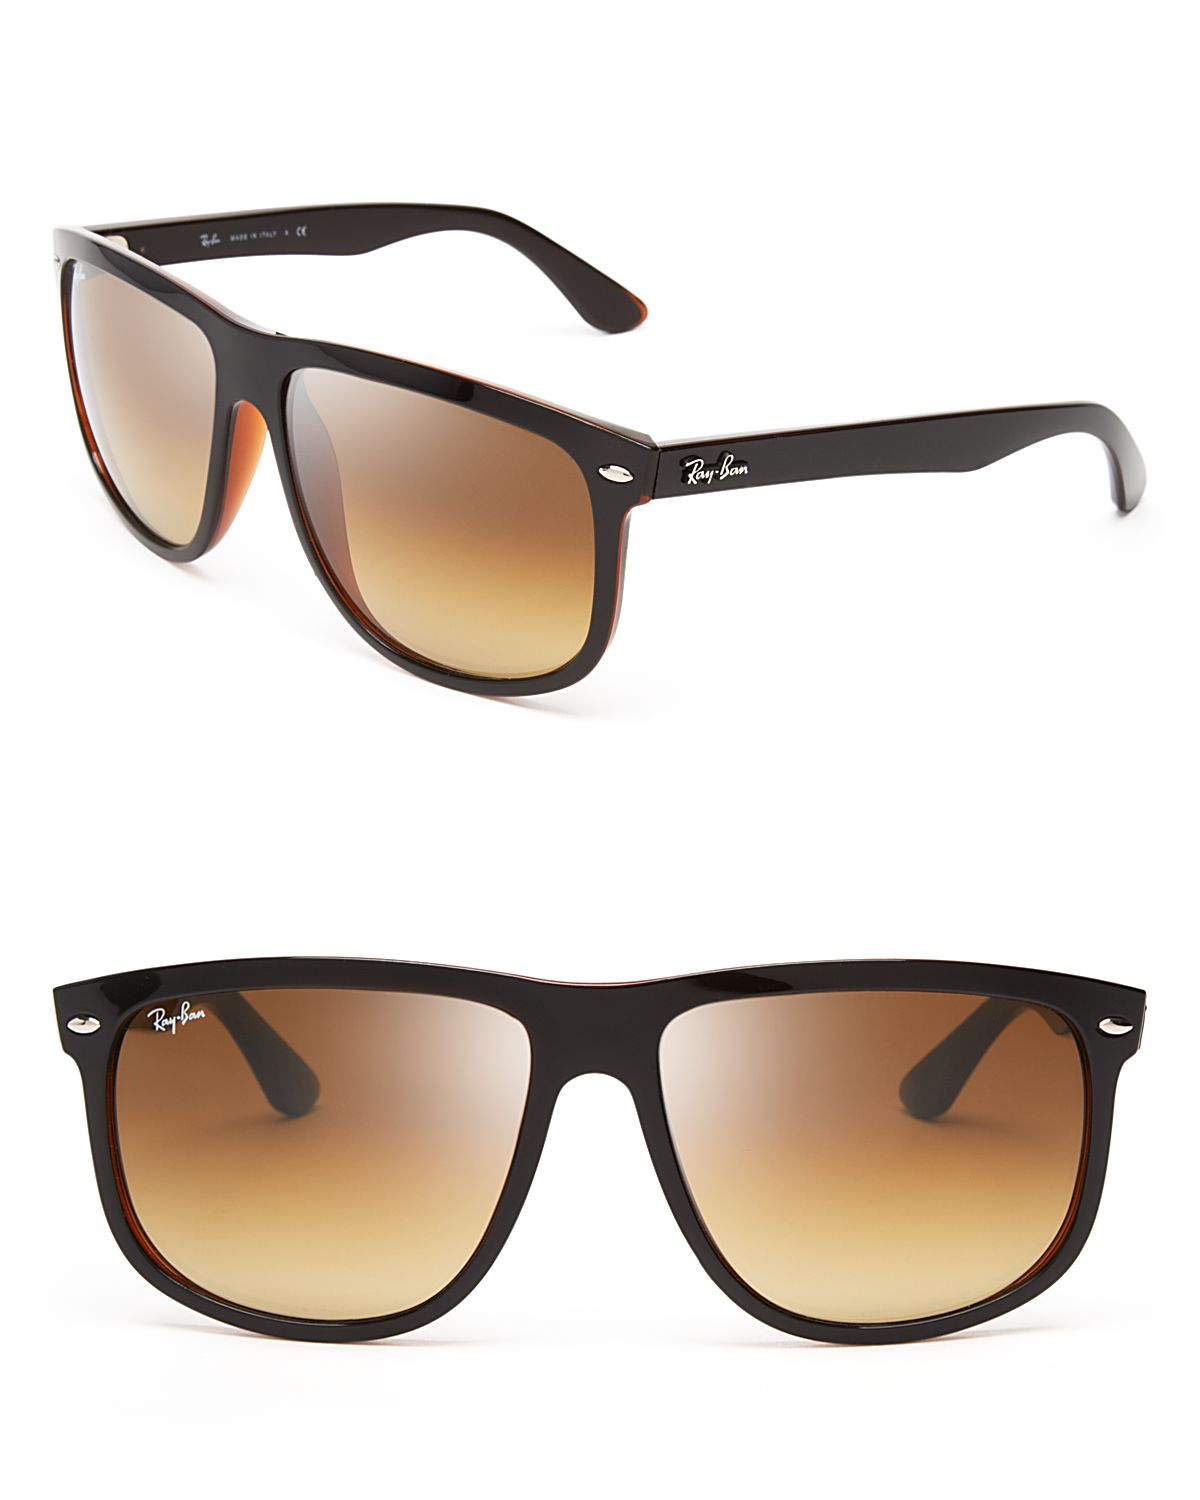 495807ae834 Lyst - Ray-Ban Highstreet Round Gradient Wayfarer Sunglasses in Black